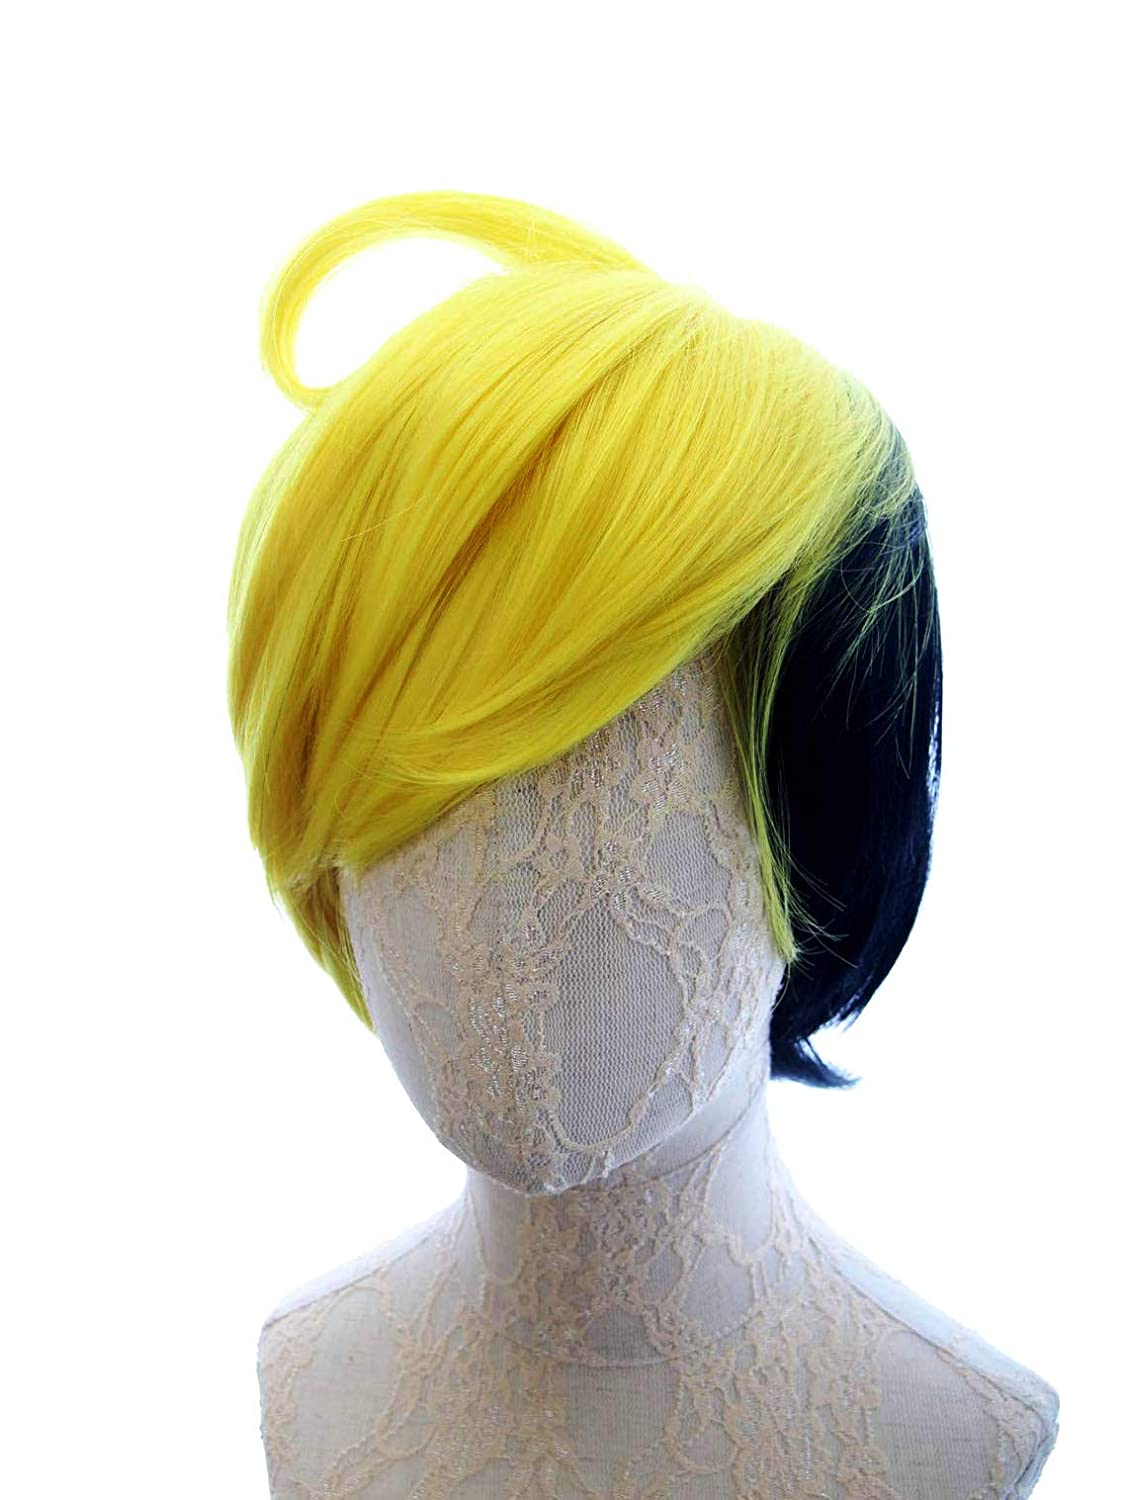 HANGCosplay Human Bill Cipher Short Yellow and Black Wig for Costume Cosplay Party and Daily Use